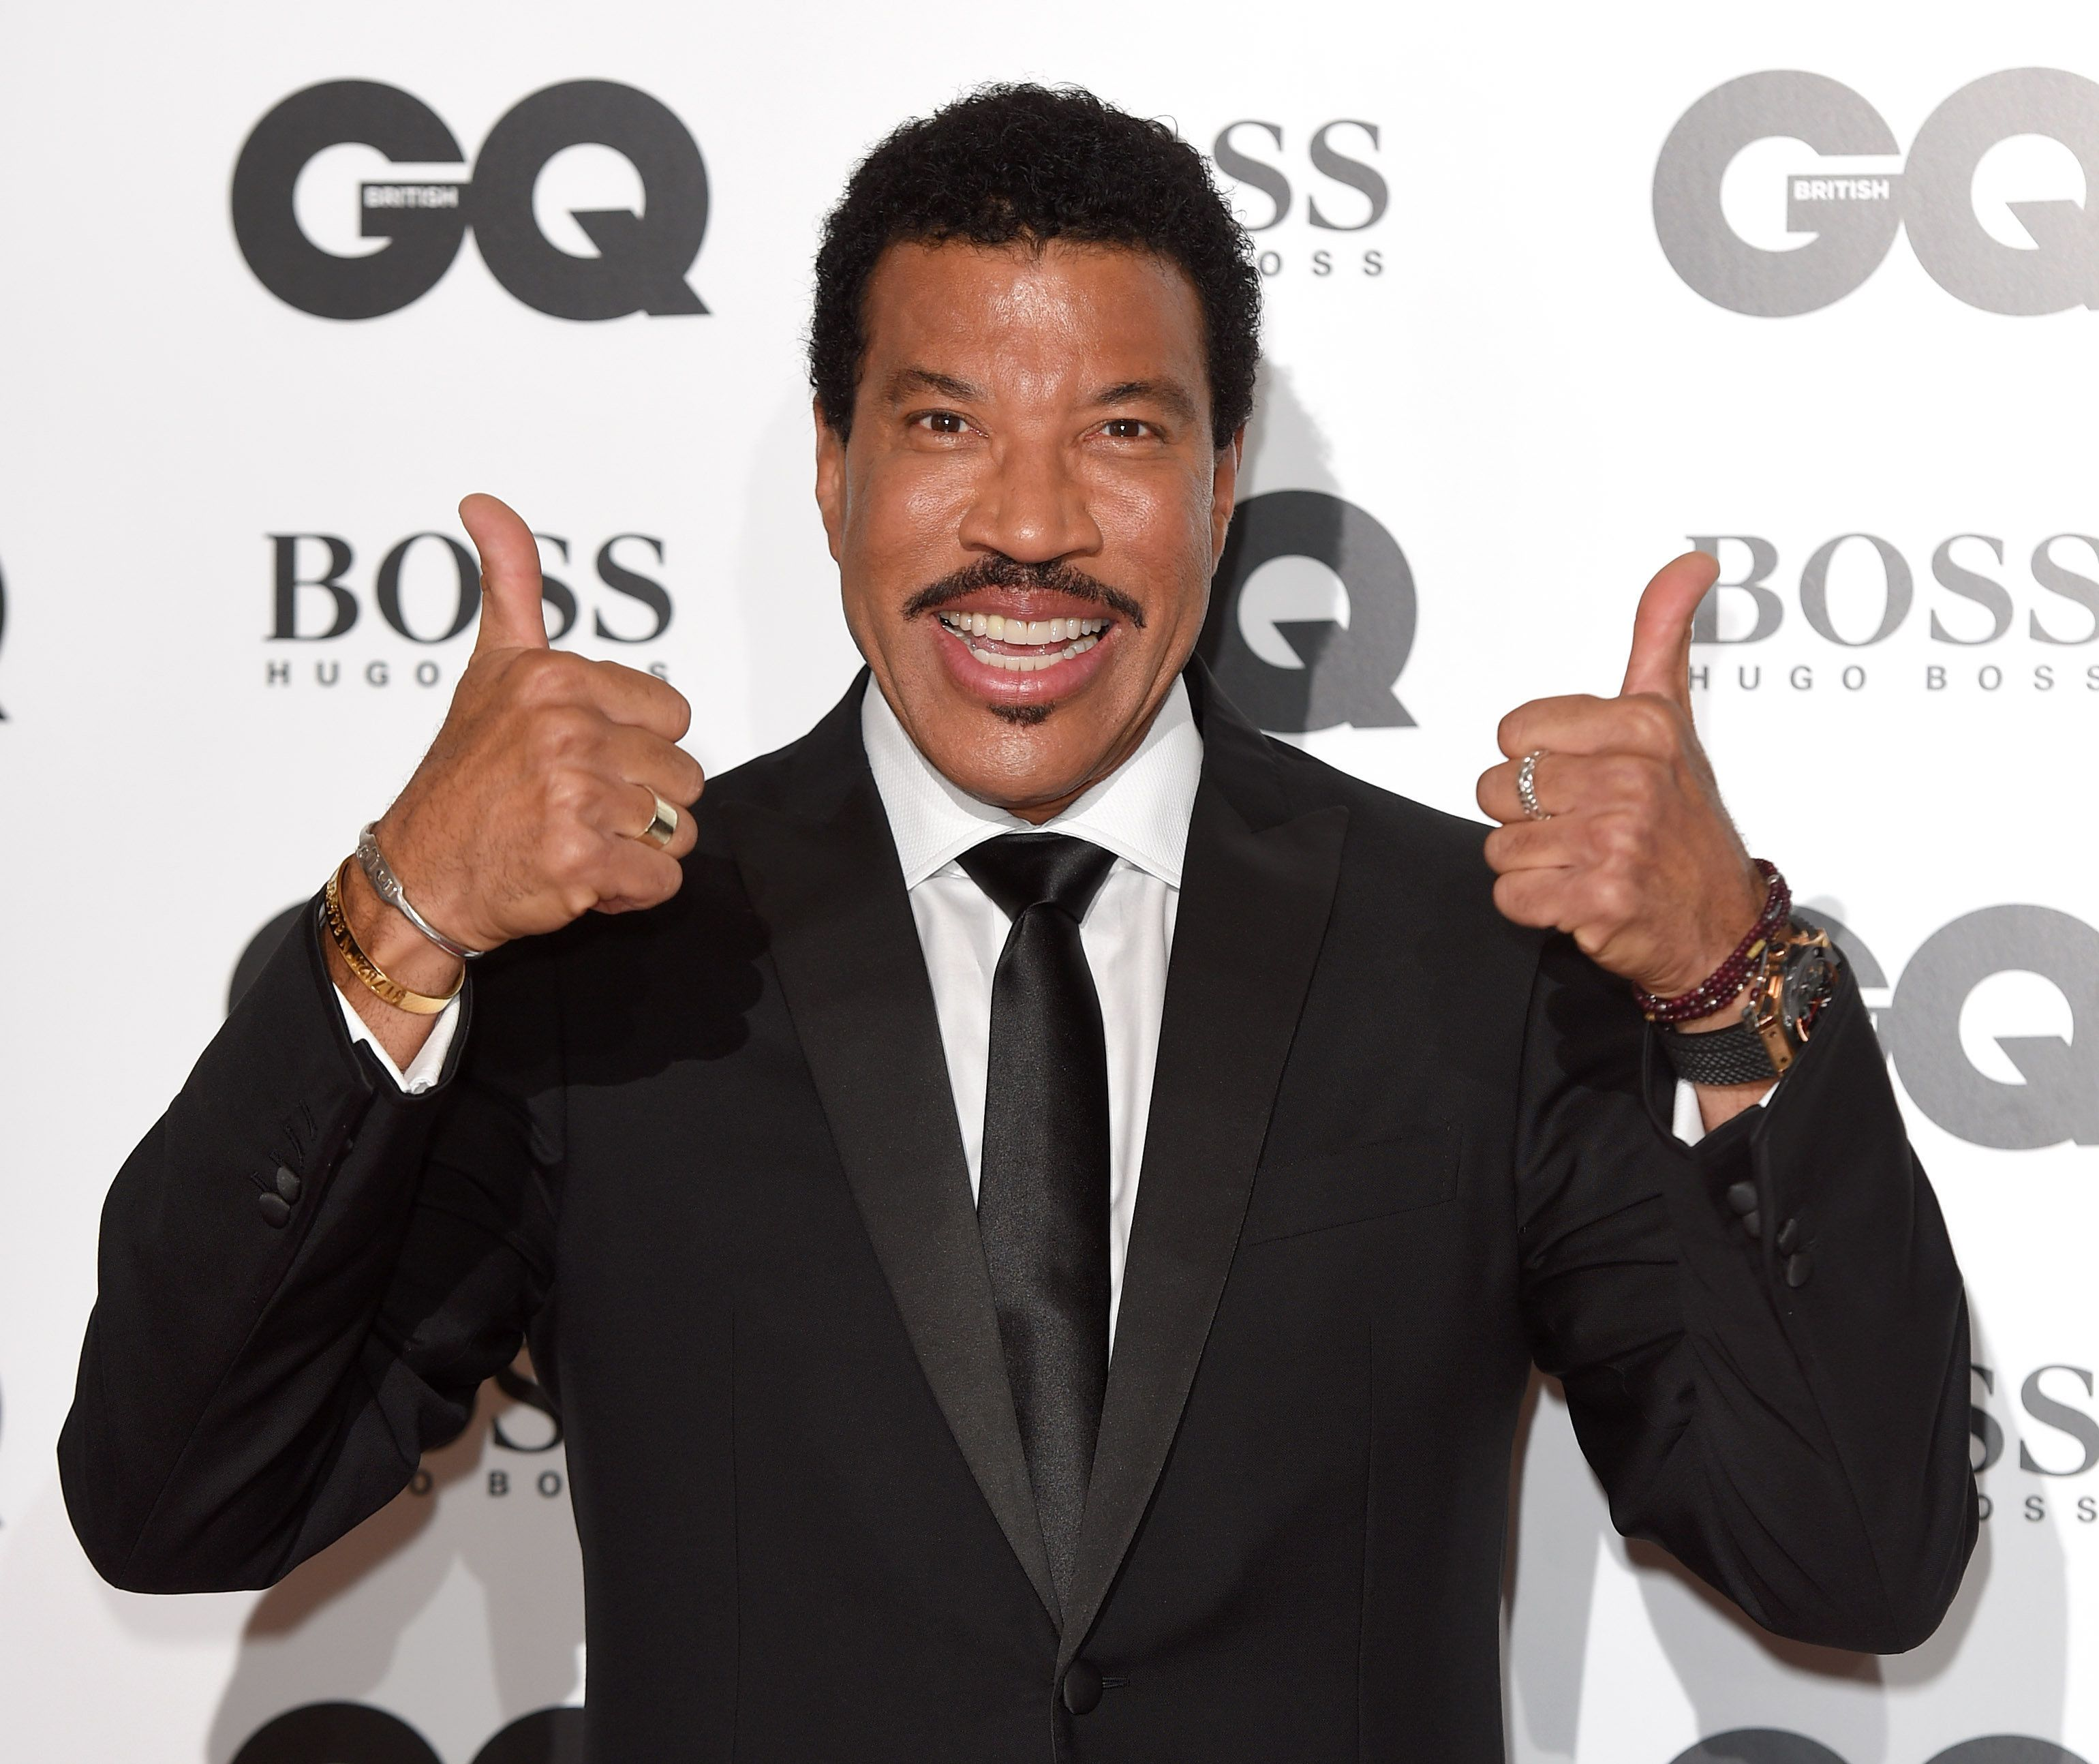 LONDON, ENGLAND - SEPTEMBER 08:  Lionel Richie attends the GQ Men Of The Year Awards at The Royal Opera House on September 8, 2015 in London, England.  (Photo by Karwai Tang/WireImage)